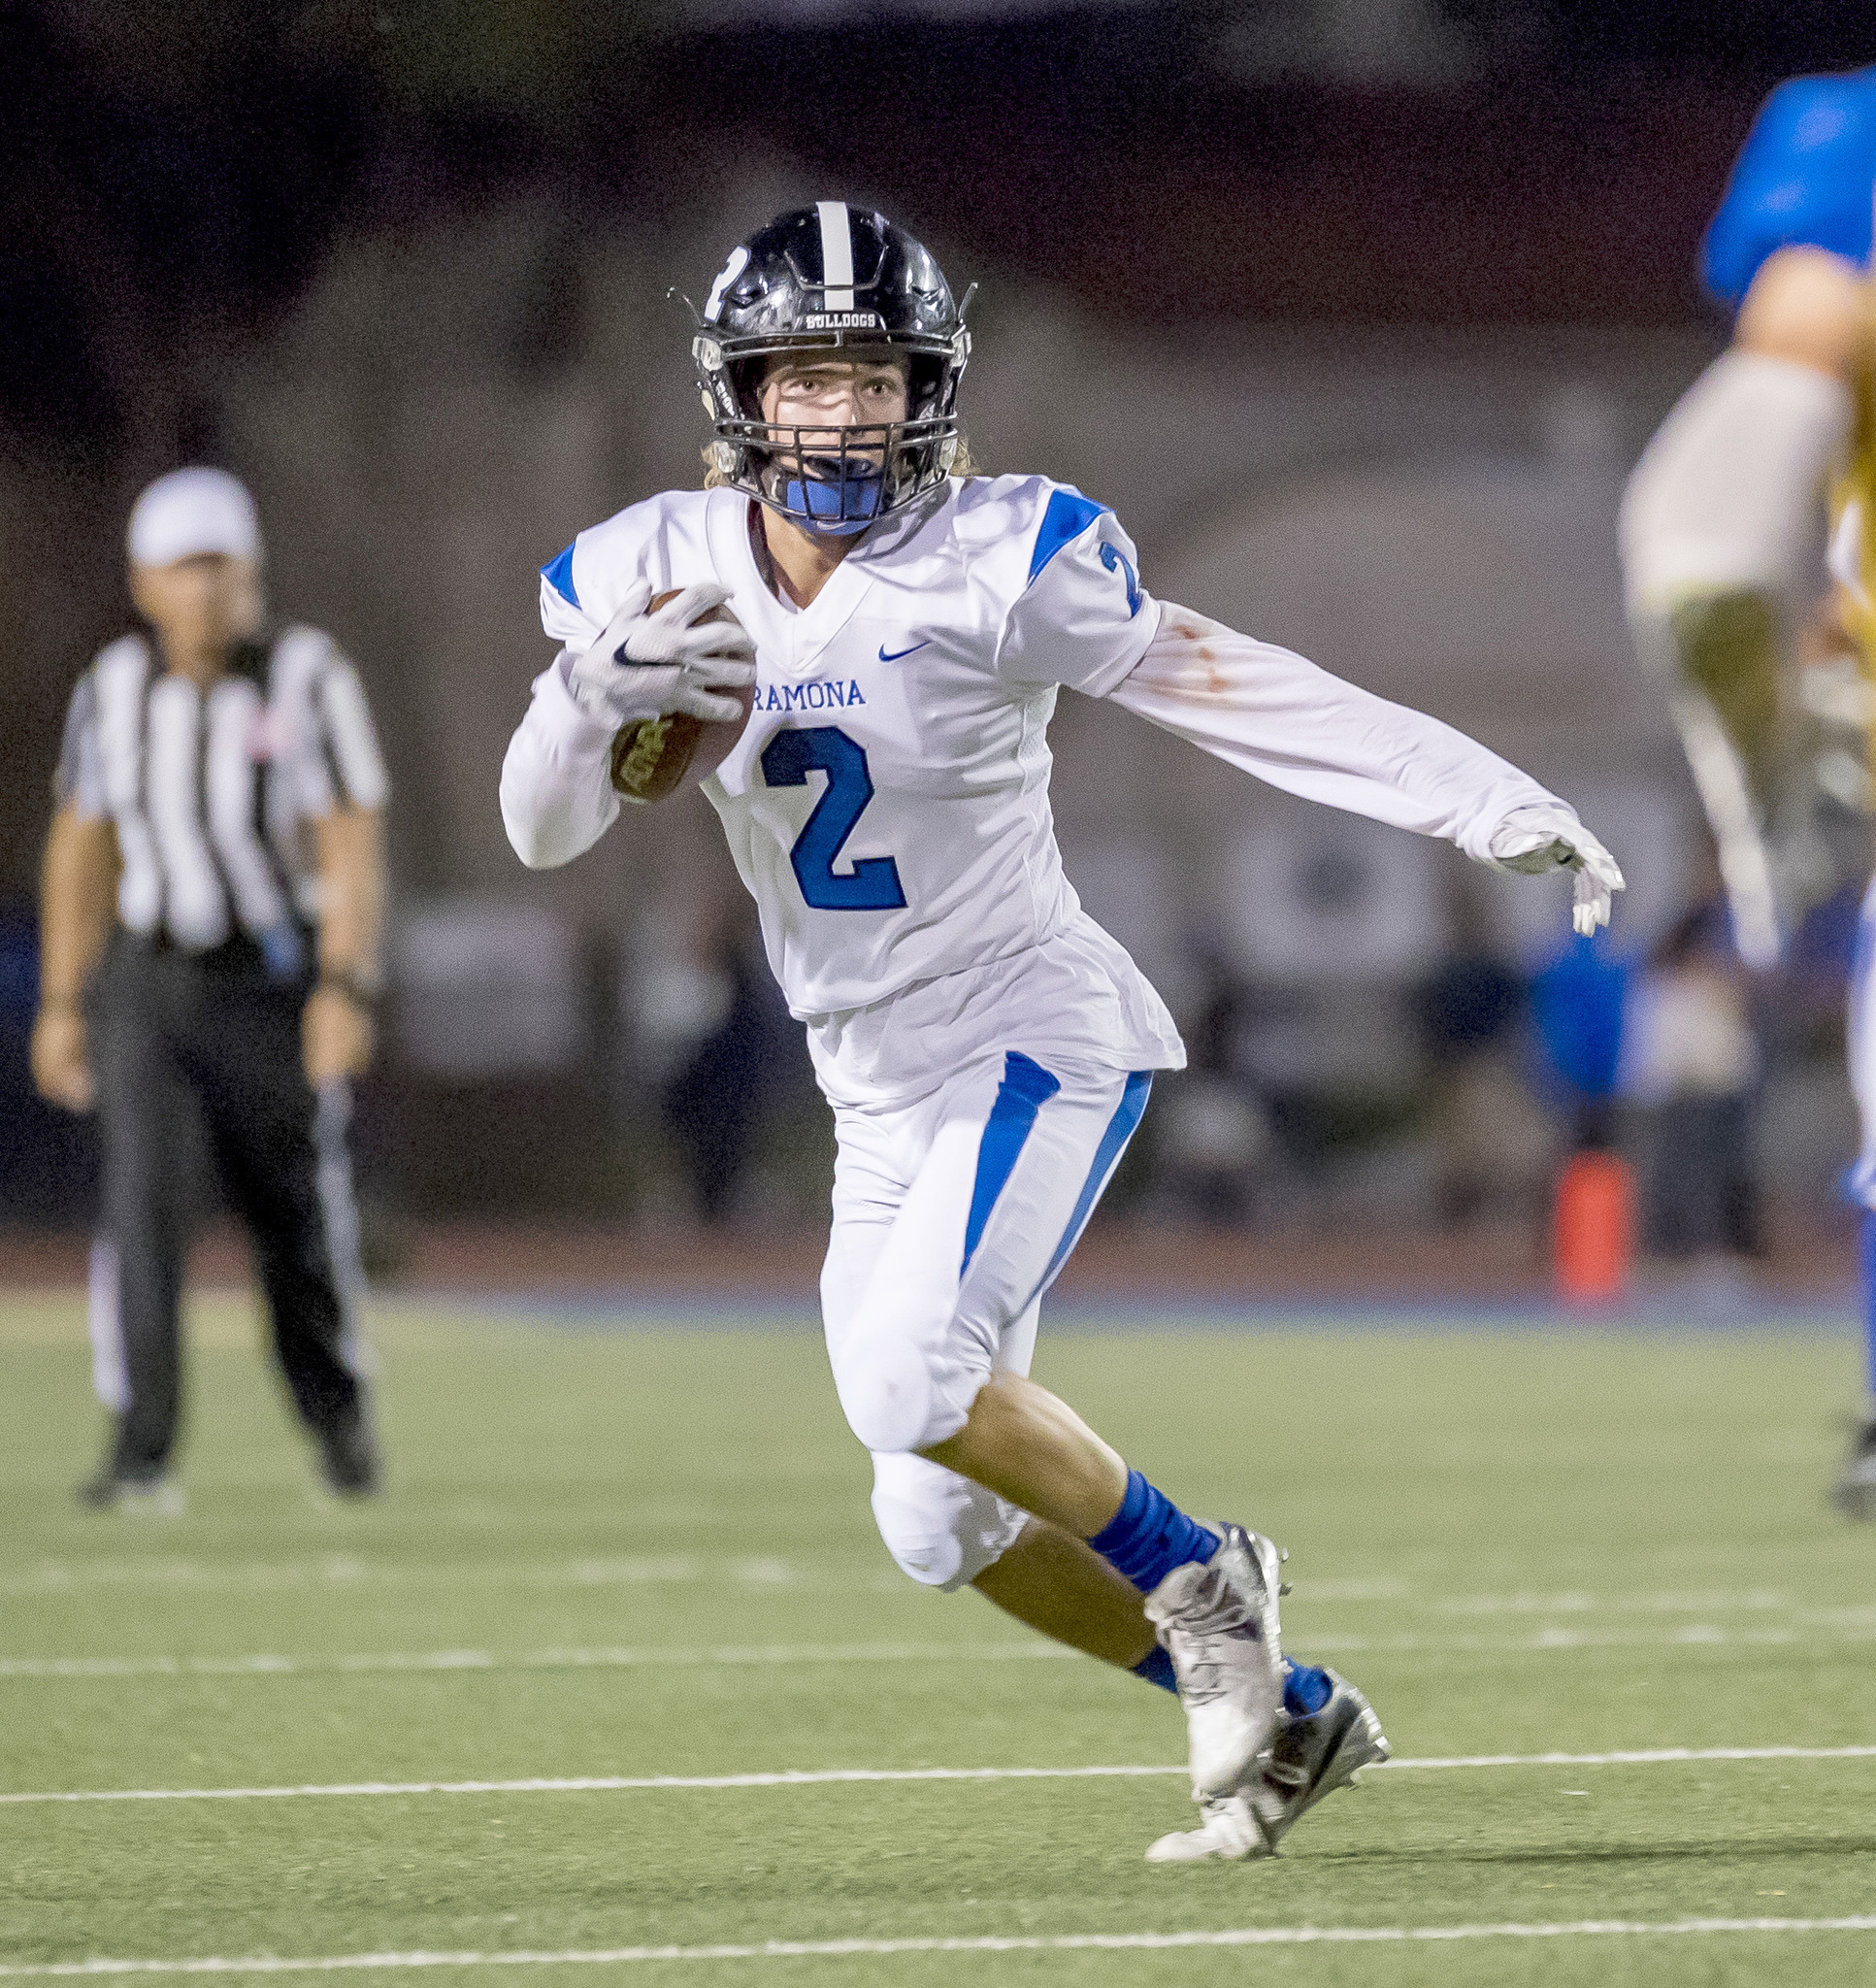 Tristan Stacy crosses the end zone three times in Ramona's away win over San Pasqual.